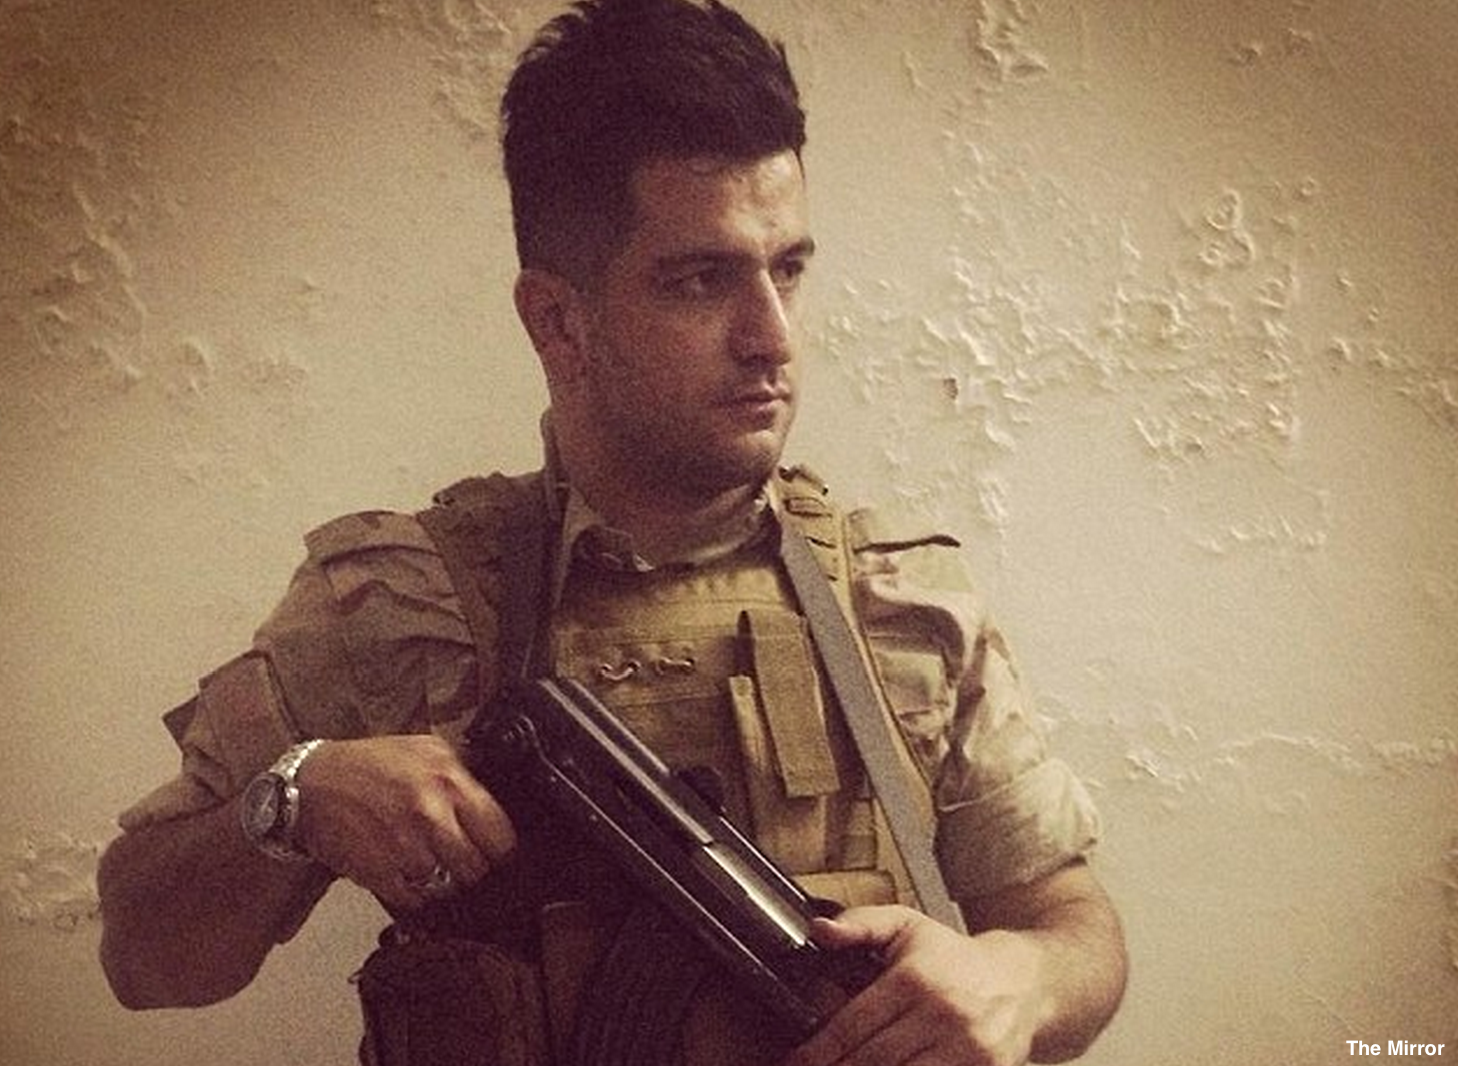 Kurdish Londoner Fights ISIS In Iraq: 'I'll Kill Them, They're Inhuman'